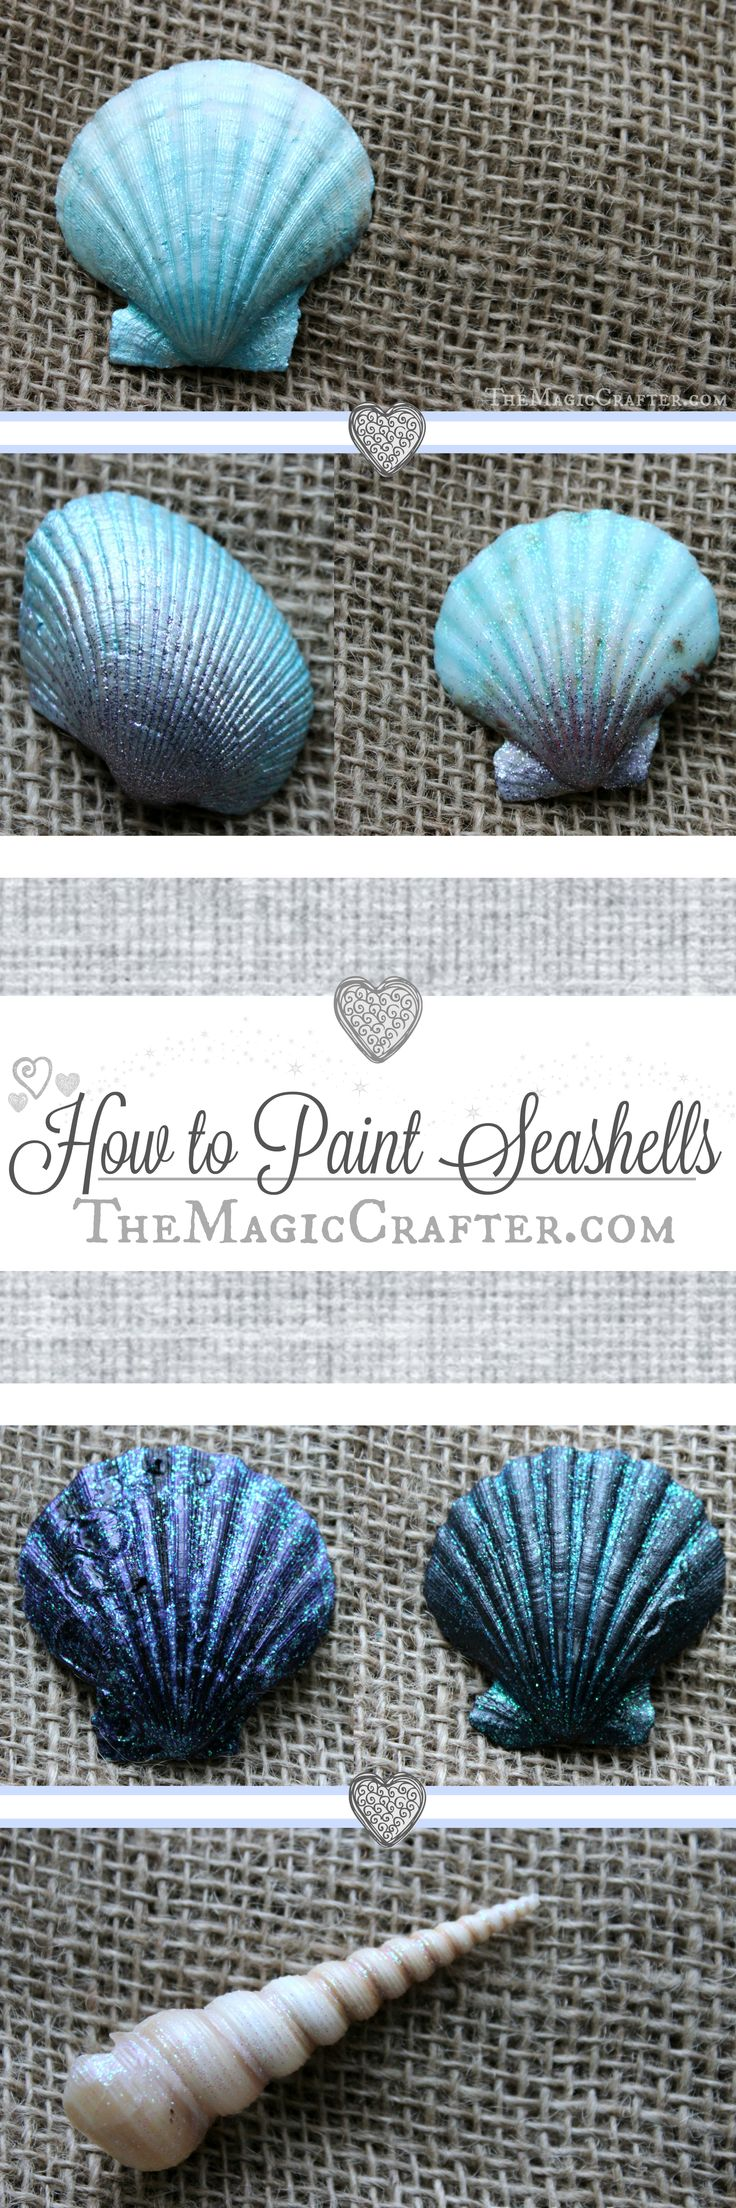 How to Paint Seashells ♥ DIY Summer Mermaid Beach Crafts ♥ Quick & Easy Video Tutorial ♥ #seashells #mermaids #SummerCrafts